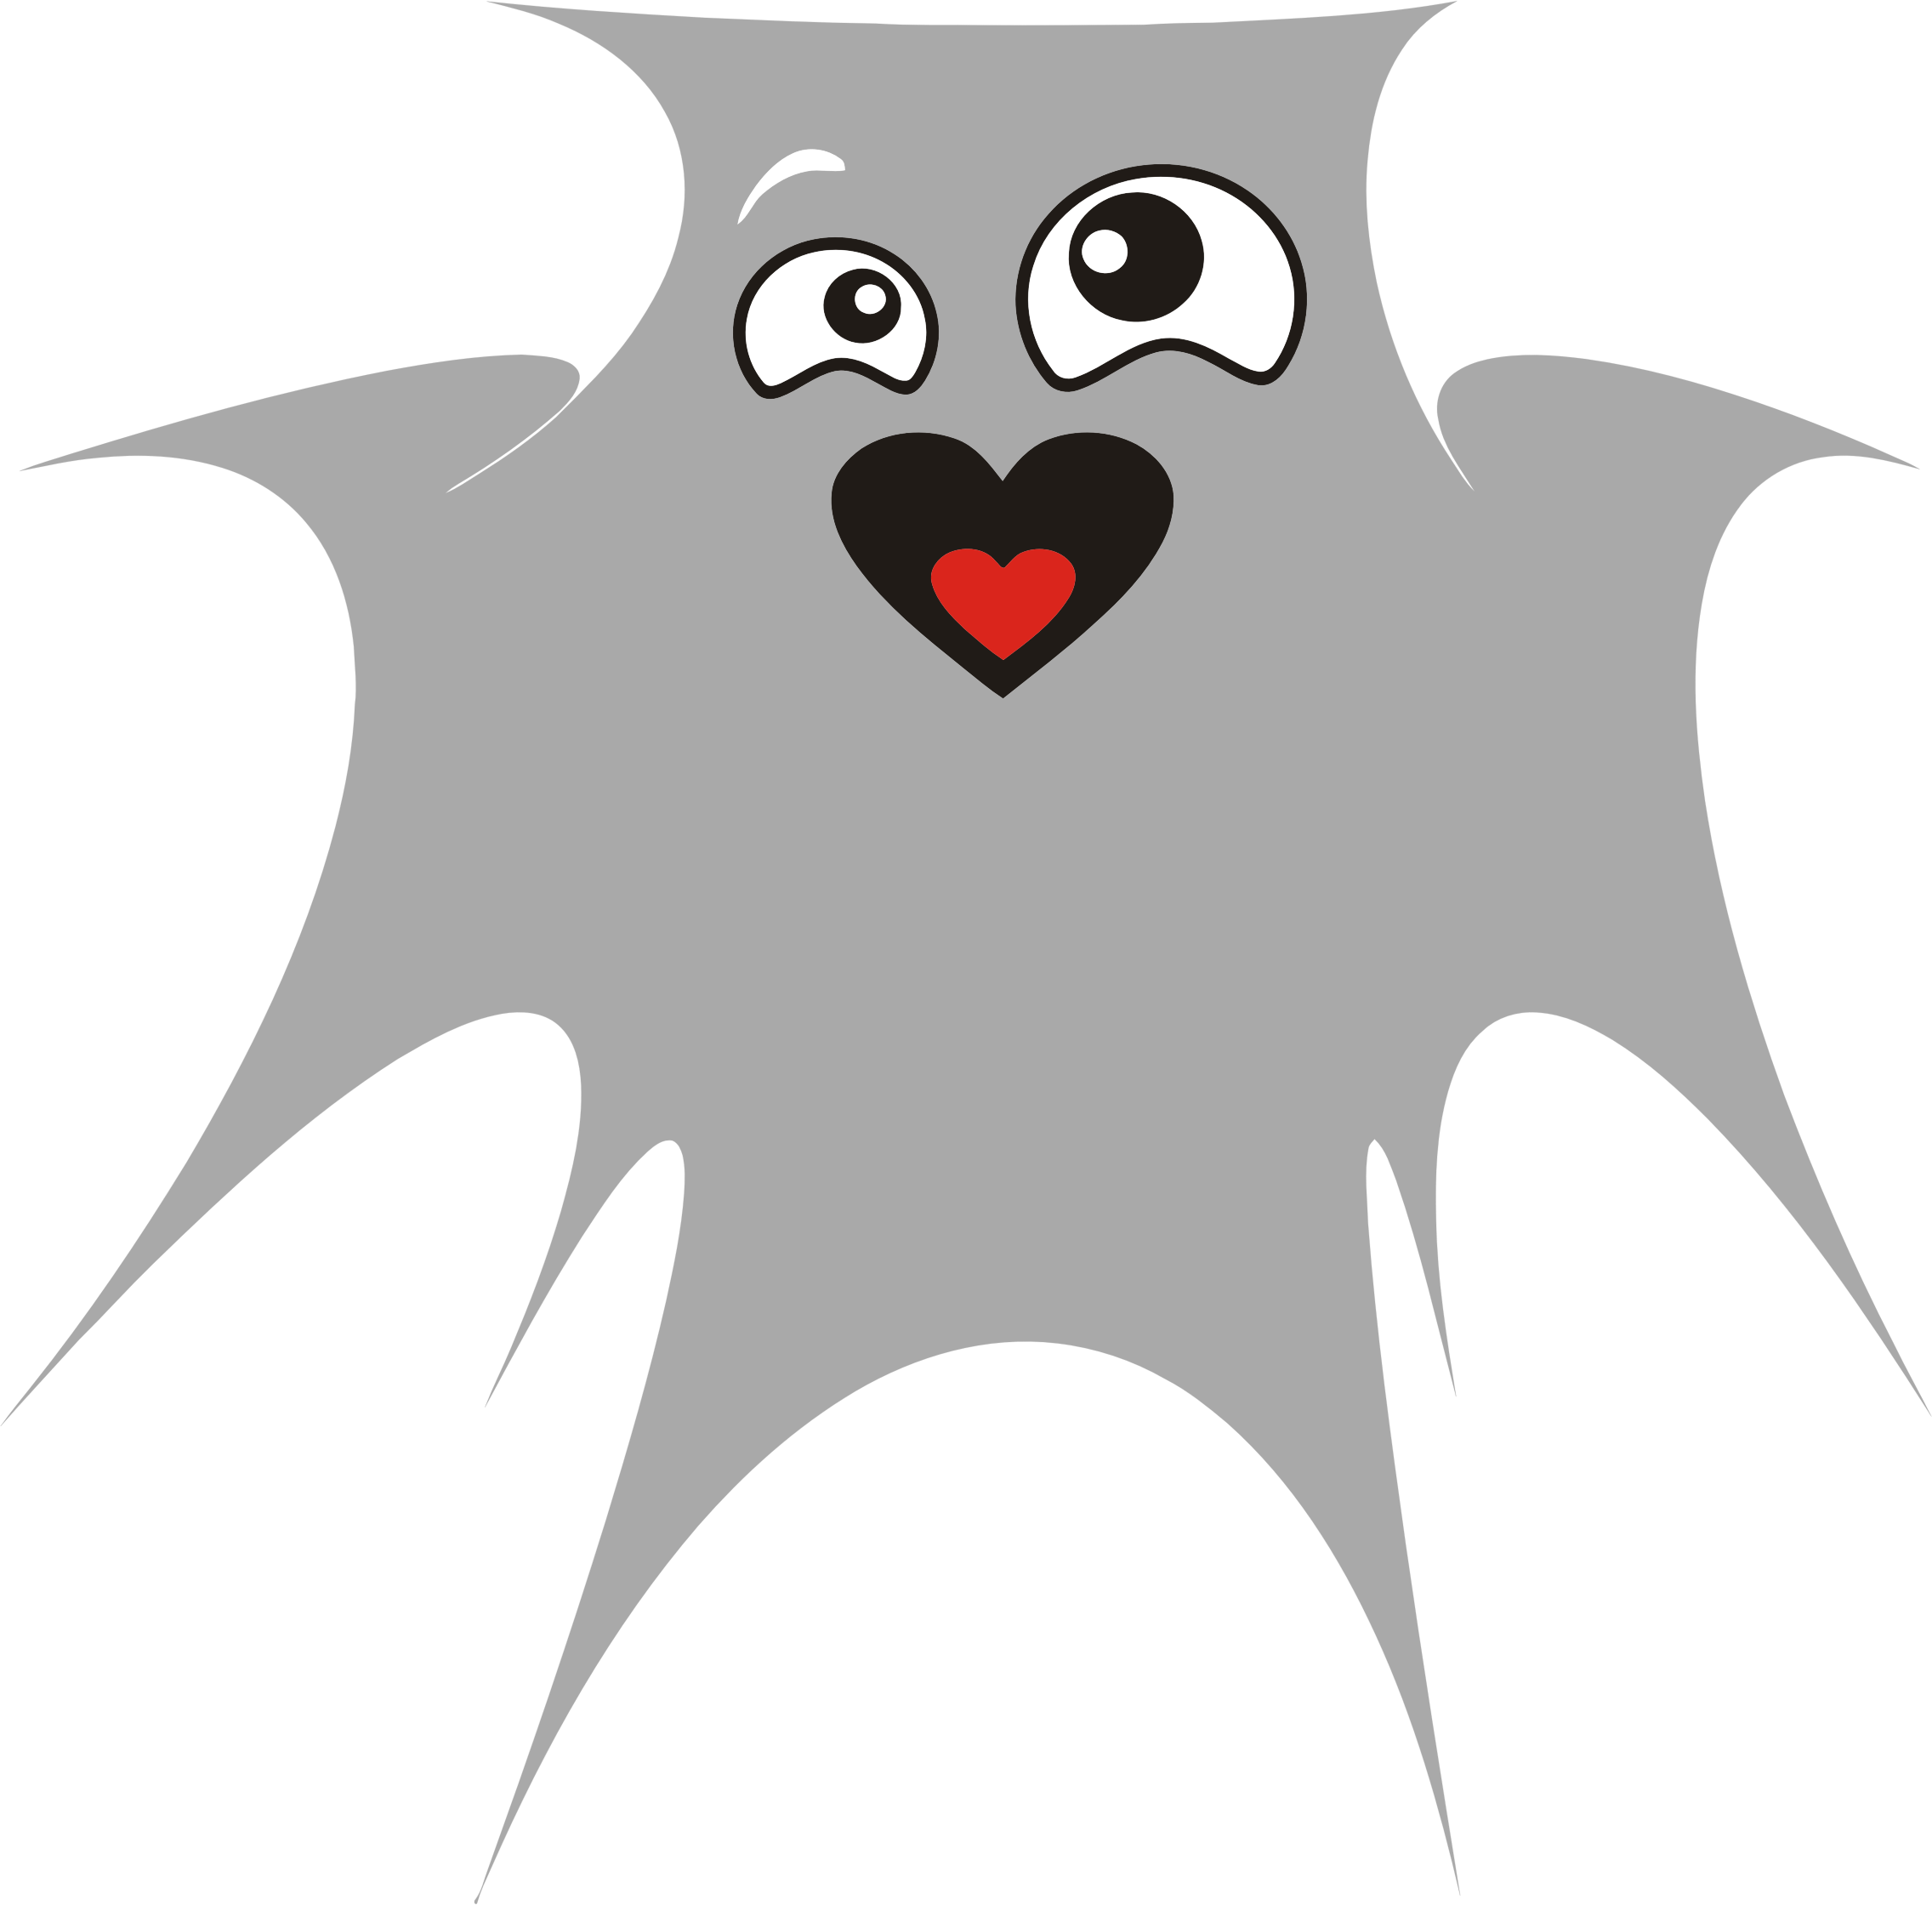 Ghost clipart character. In love big image